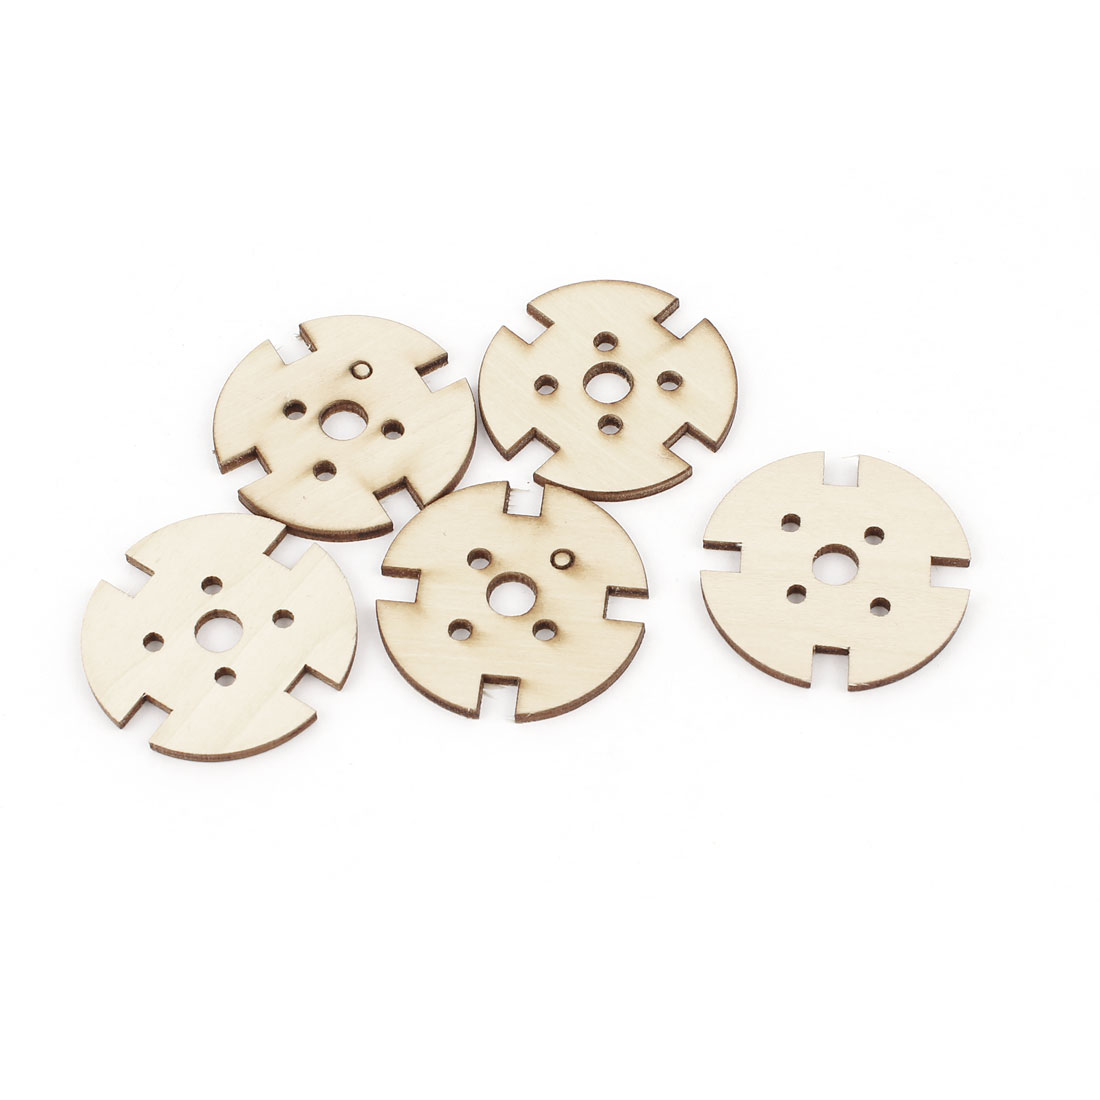 5Pcs DIY RC Toy Plane Airplane Aircraf 2212 2208 Brushless Motor 4 Vanes Round Wooden Mount 40mm x 2.5mm